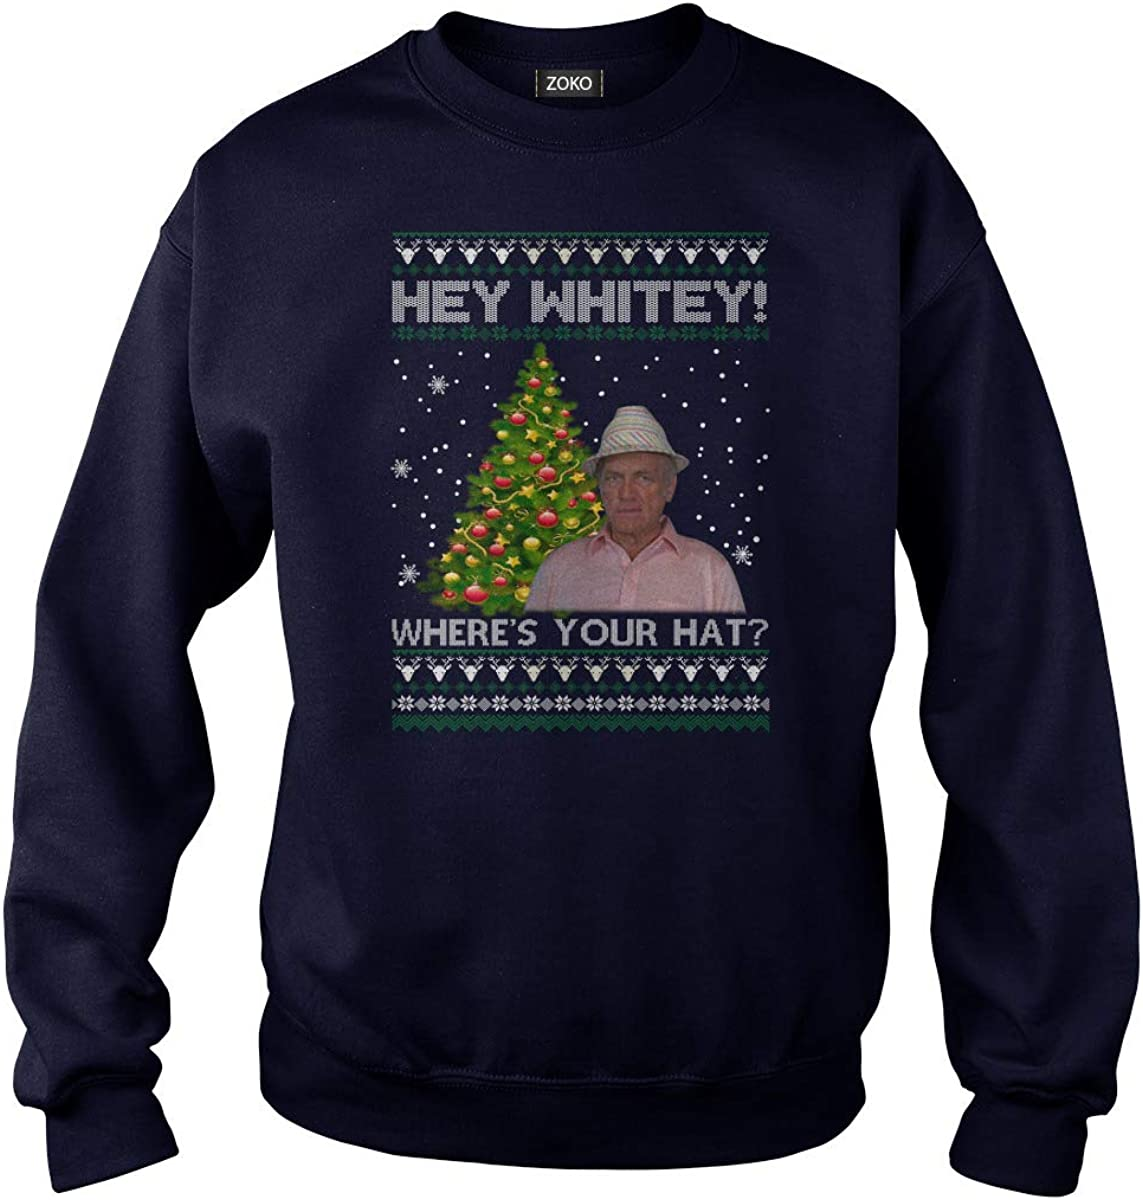 Zoko Apparel Hey Whitey Wheres Your Hat Ugly Christmas T-Shirt